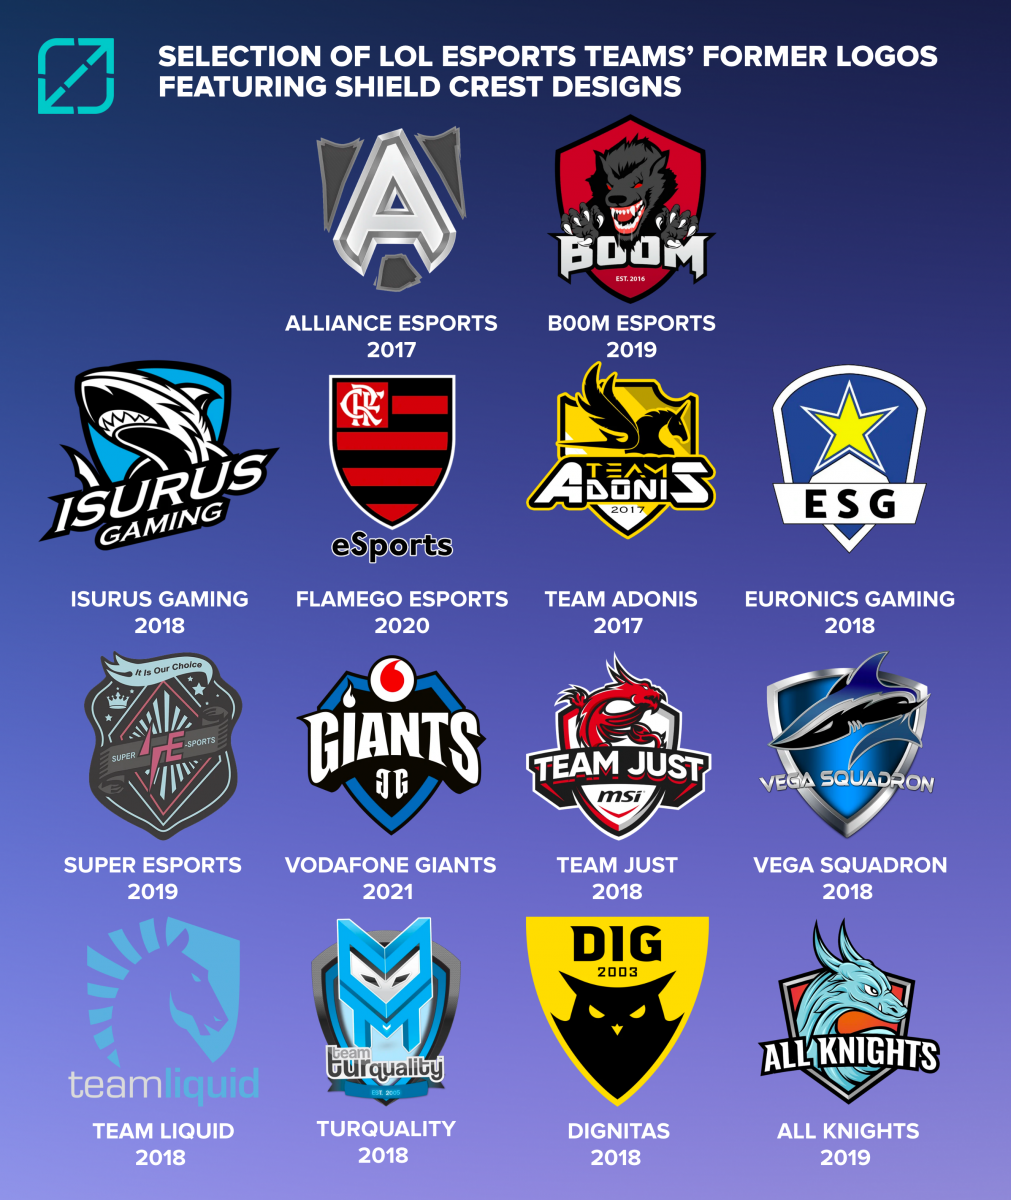 SELECTION OF LOL ESPORTS TEAMS' FORMER LOGOS FEATURING SHIELD CREST DESIGNS